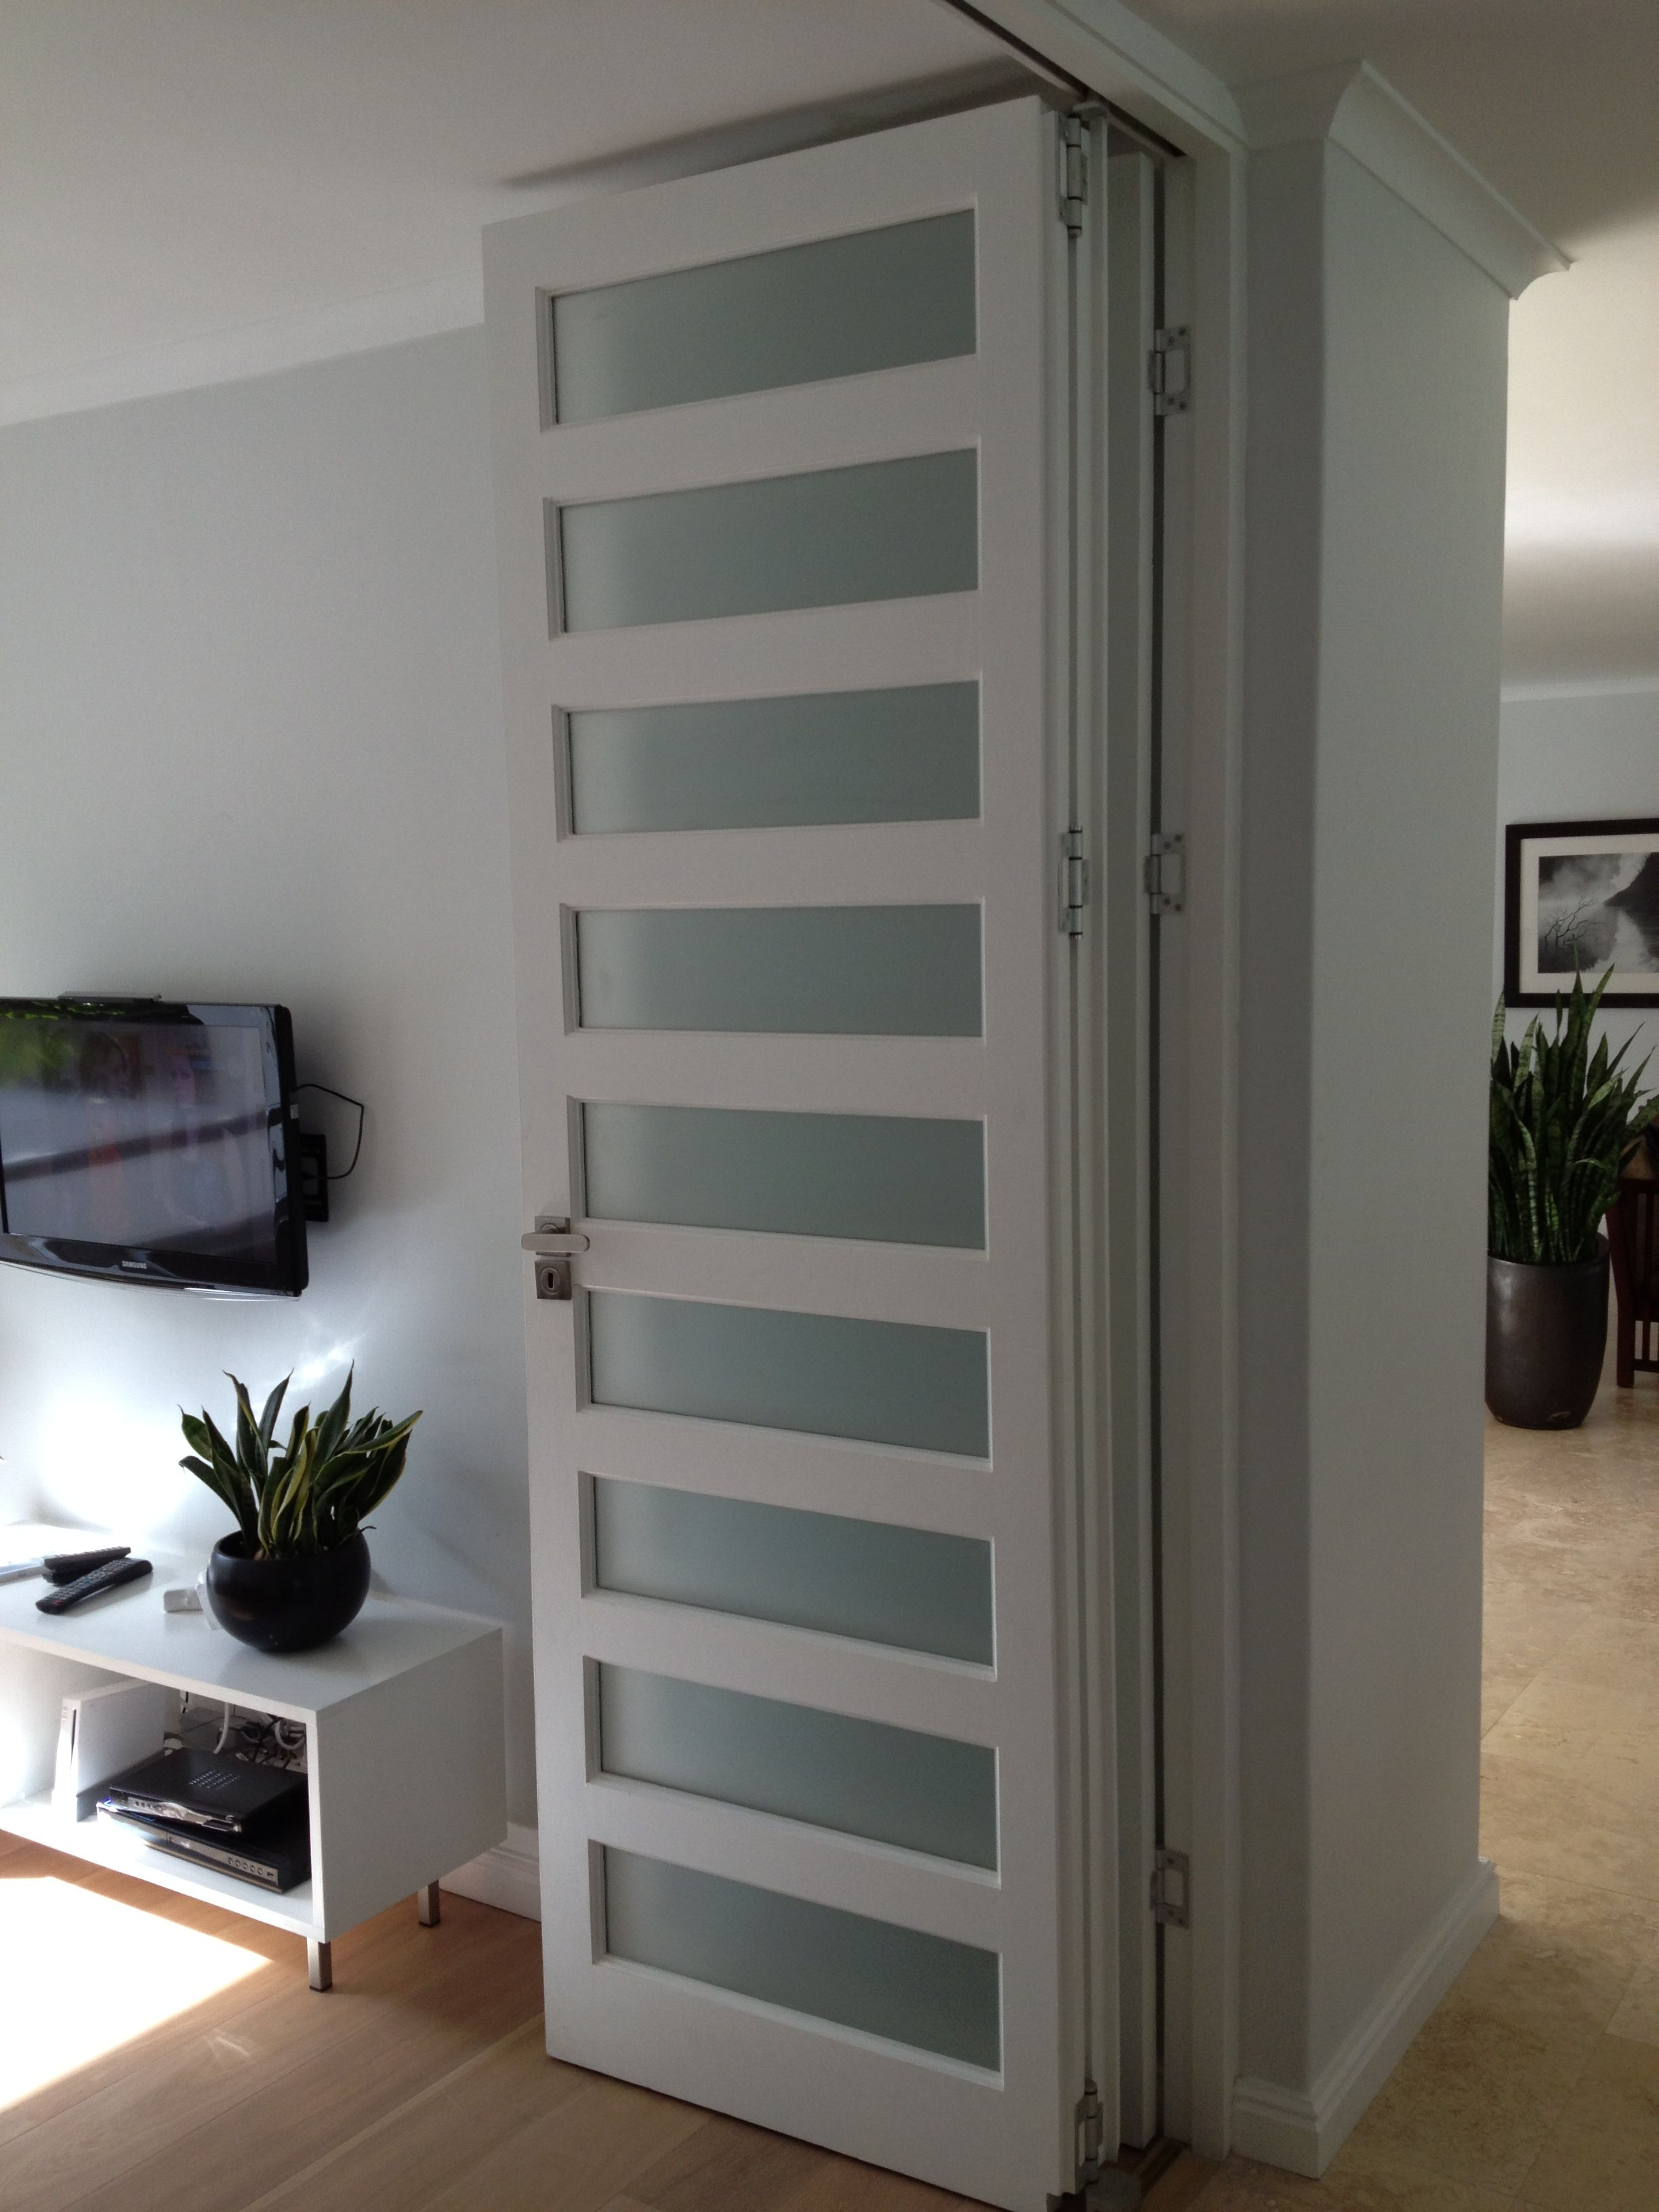 folding room divider by Door and Window Decor orsystems